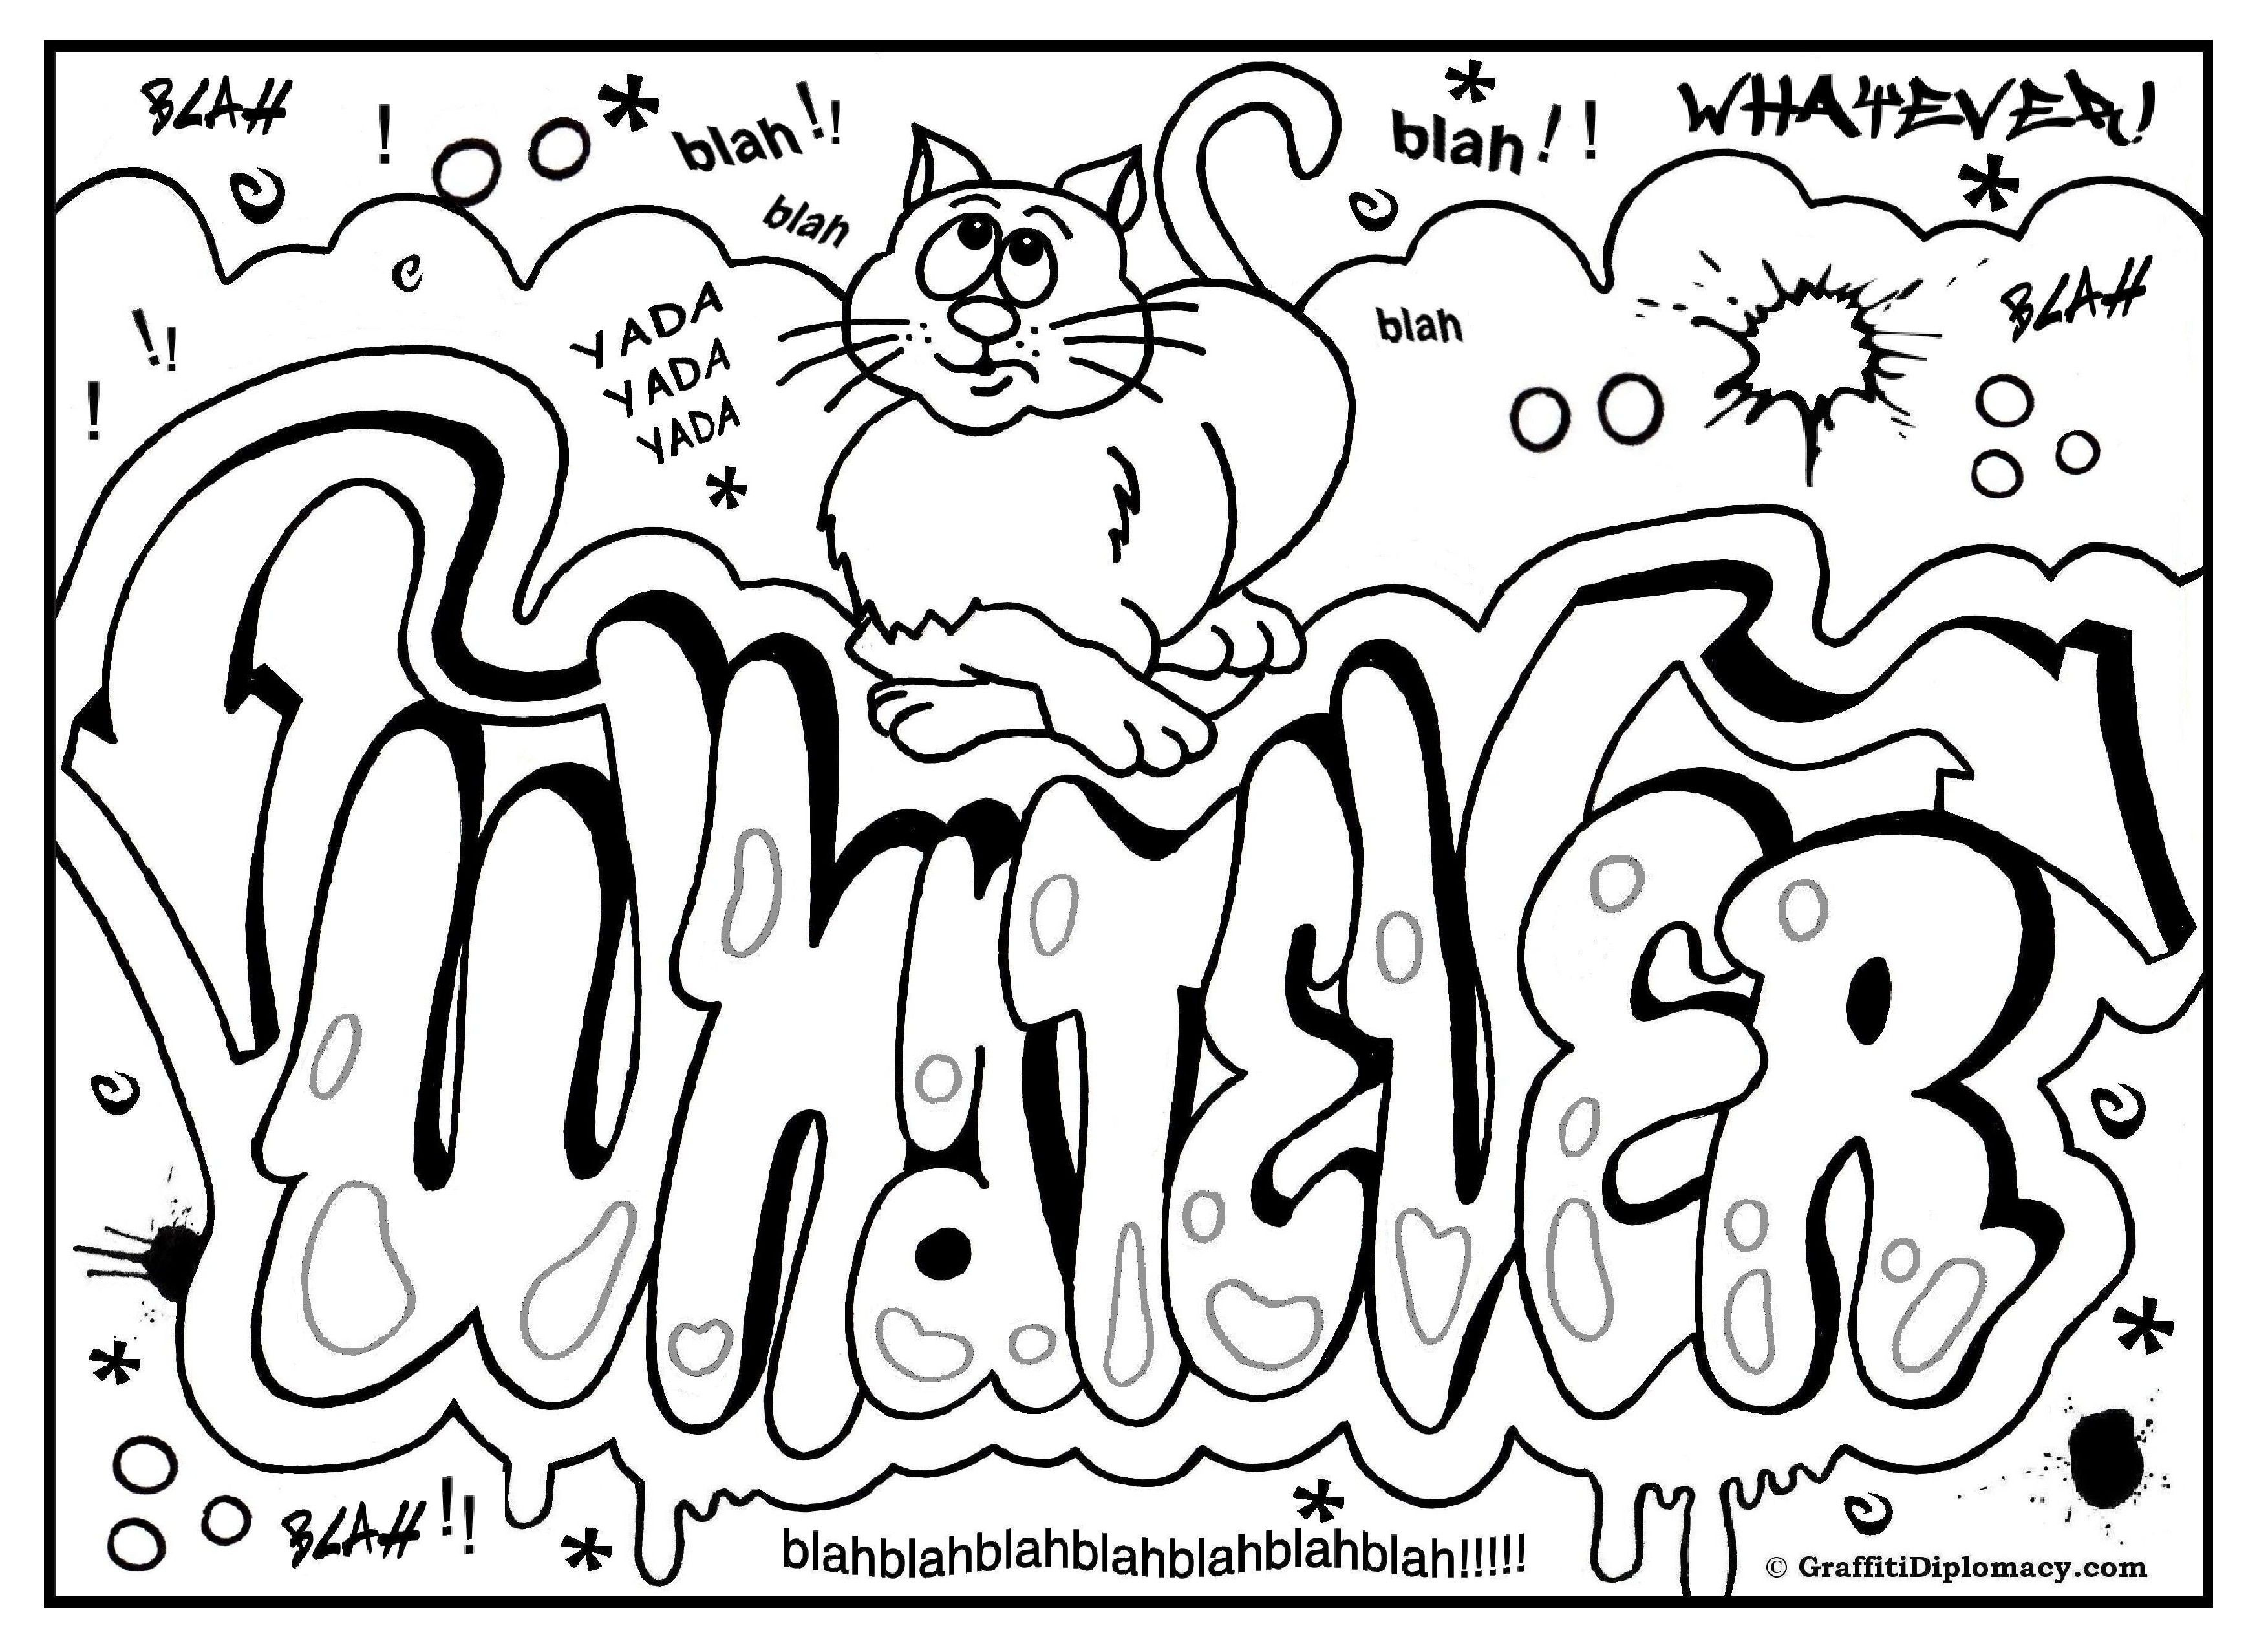 Graffiti Coloring Page, Free Printable Graffiti Room Signs | Free - Free Printable Coloring Pages For Adults Only Swear Words